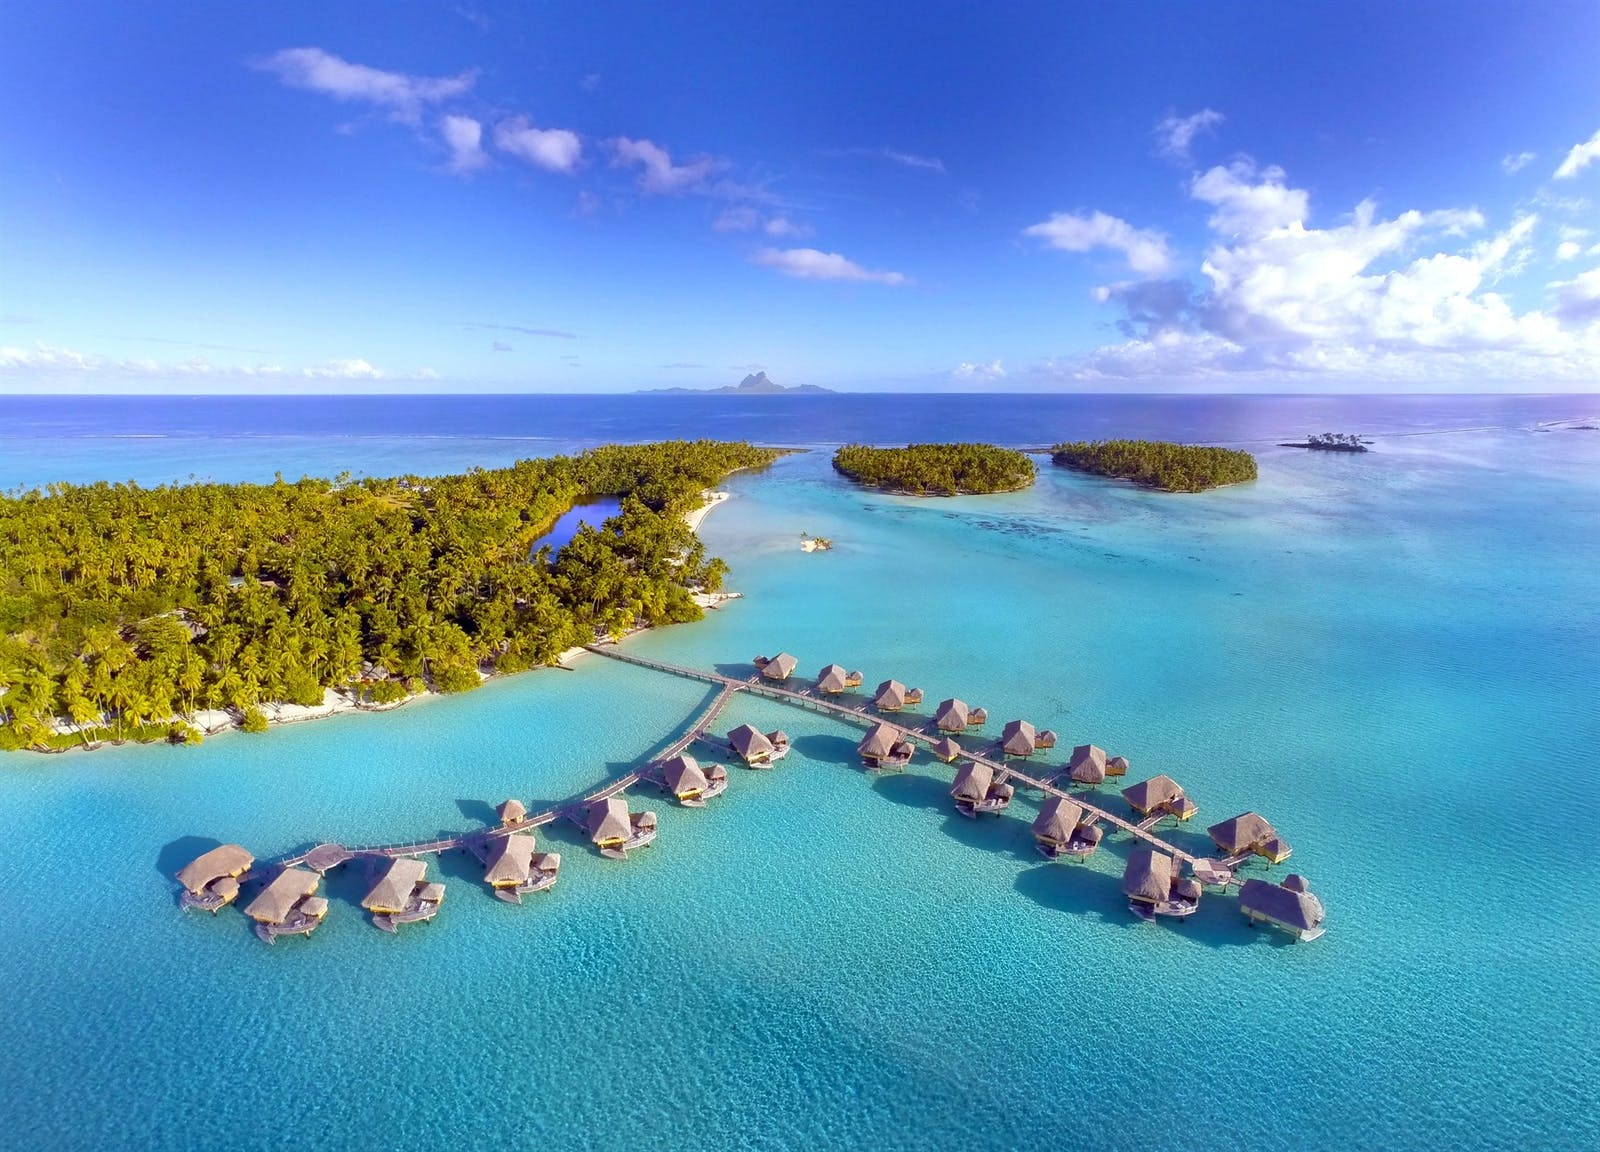 Ariel View of Le Taha'a Island Resort & Spa, Tahiti, French Polynesia